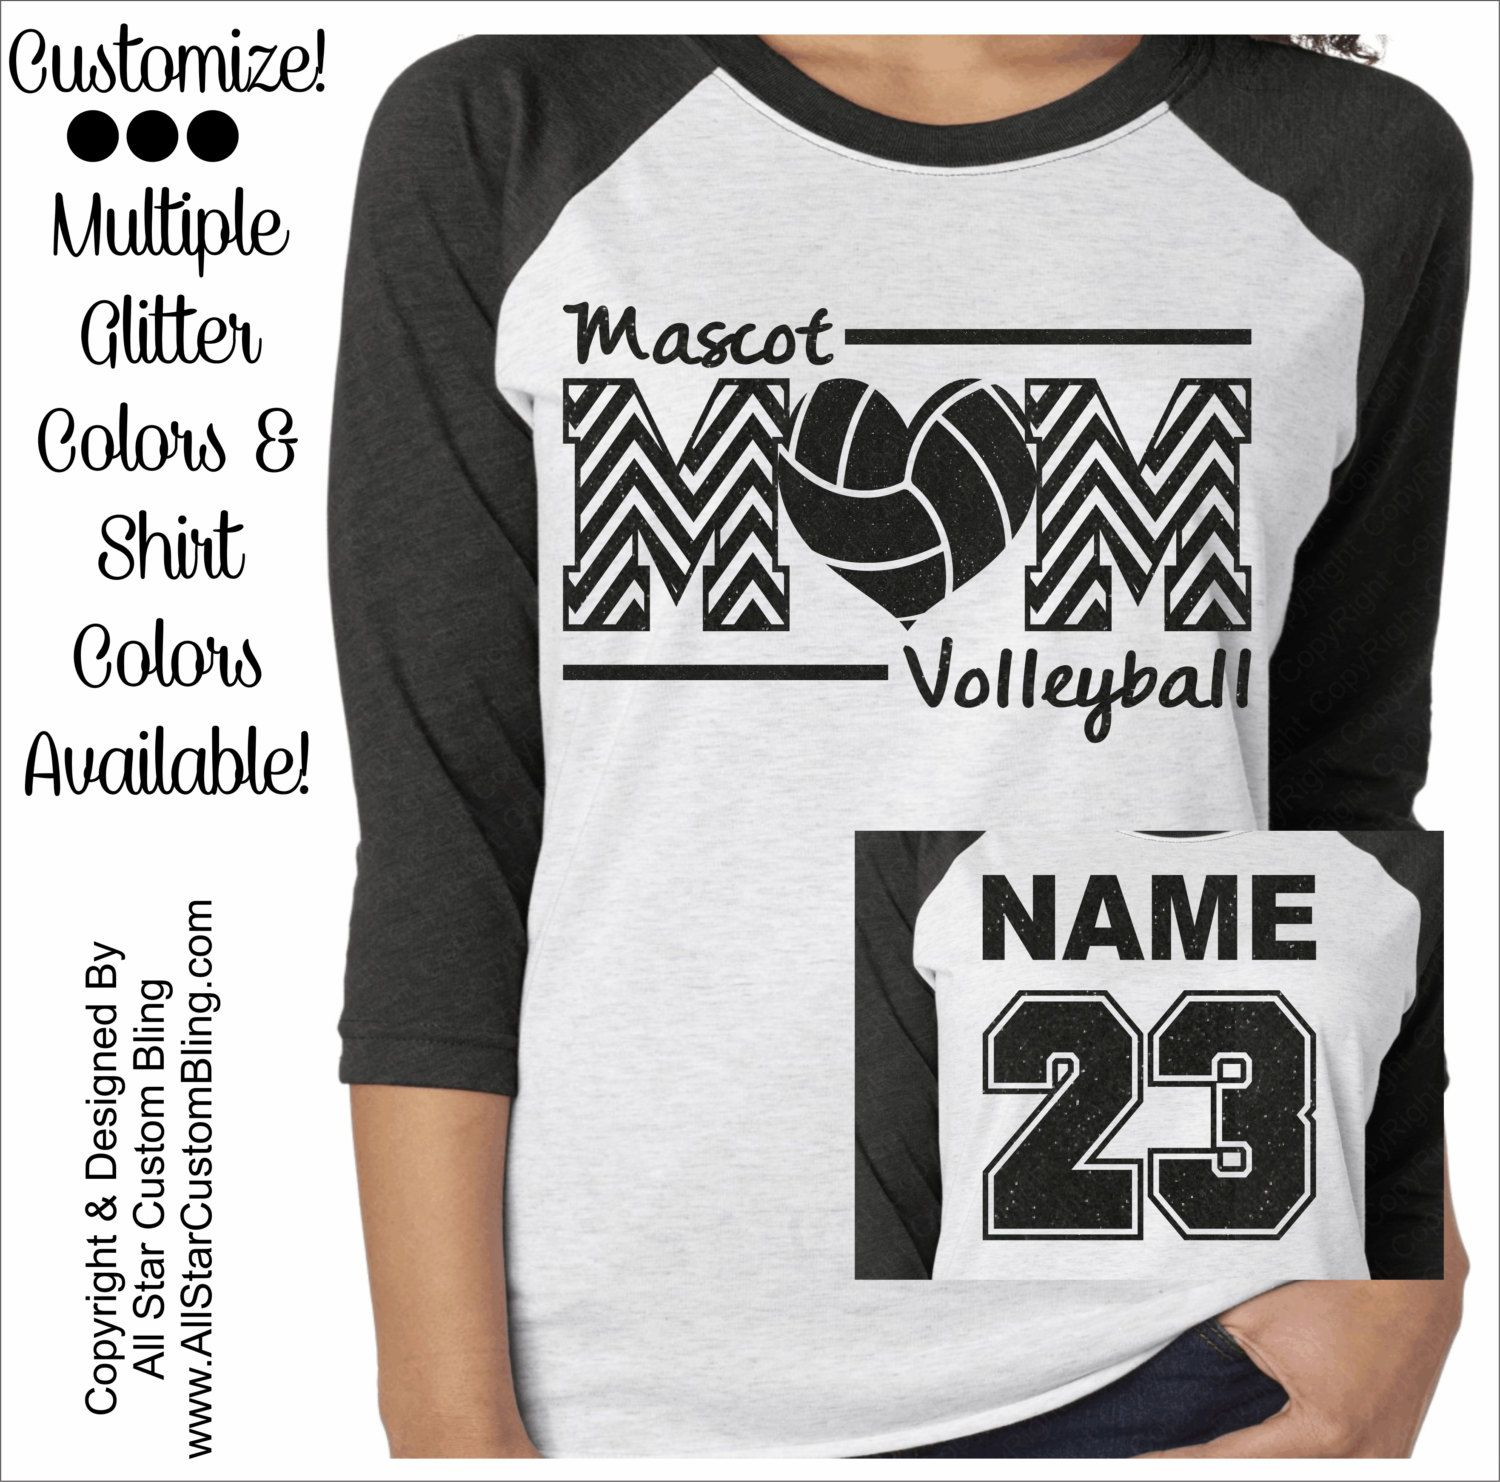 Glitter Volleyball Mom Chevron Tri Blend Raglan Custom Volleyball Raglan Volleyball Mom Raglan Volleyball Mom Shirts Volleyball Tshirt Designs Volleyball Mom